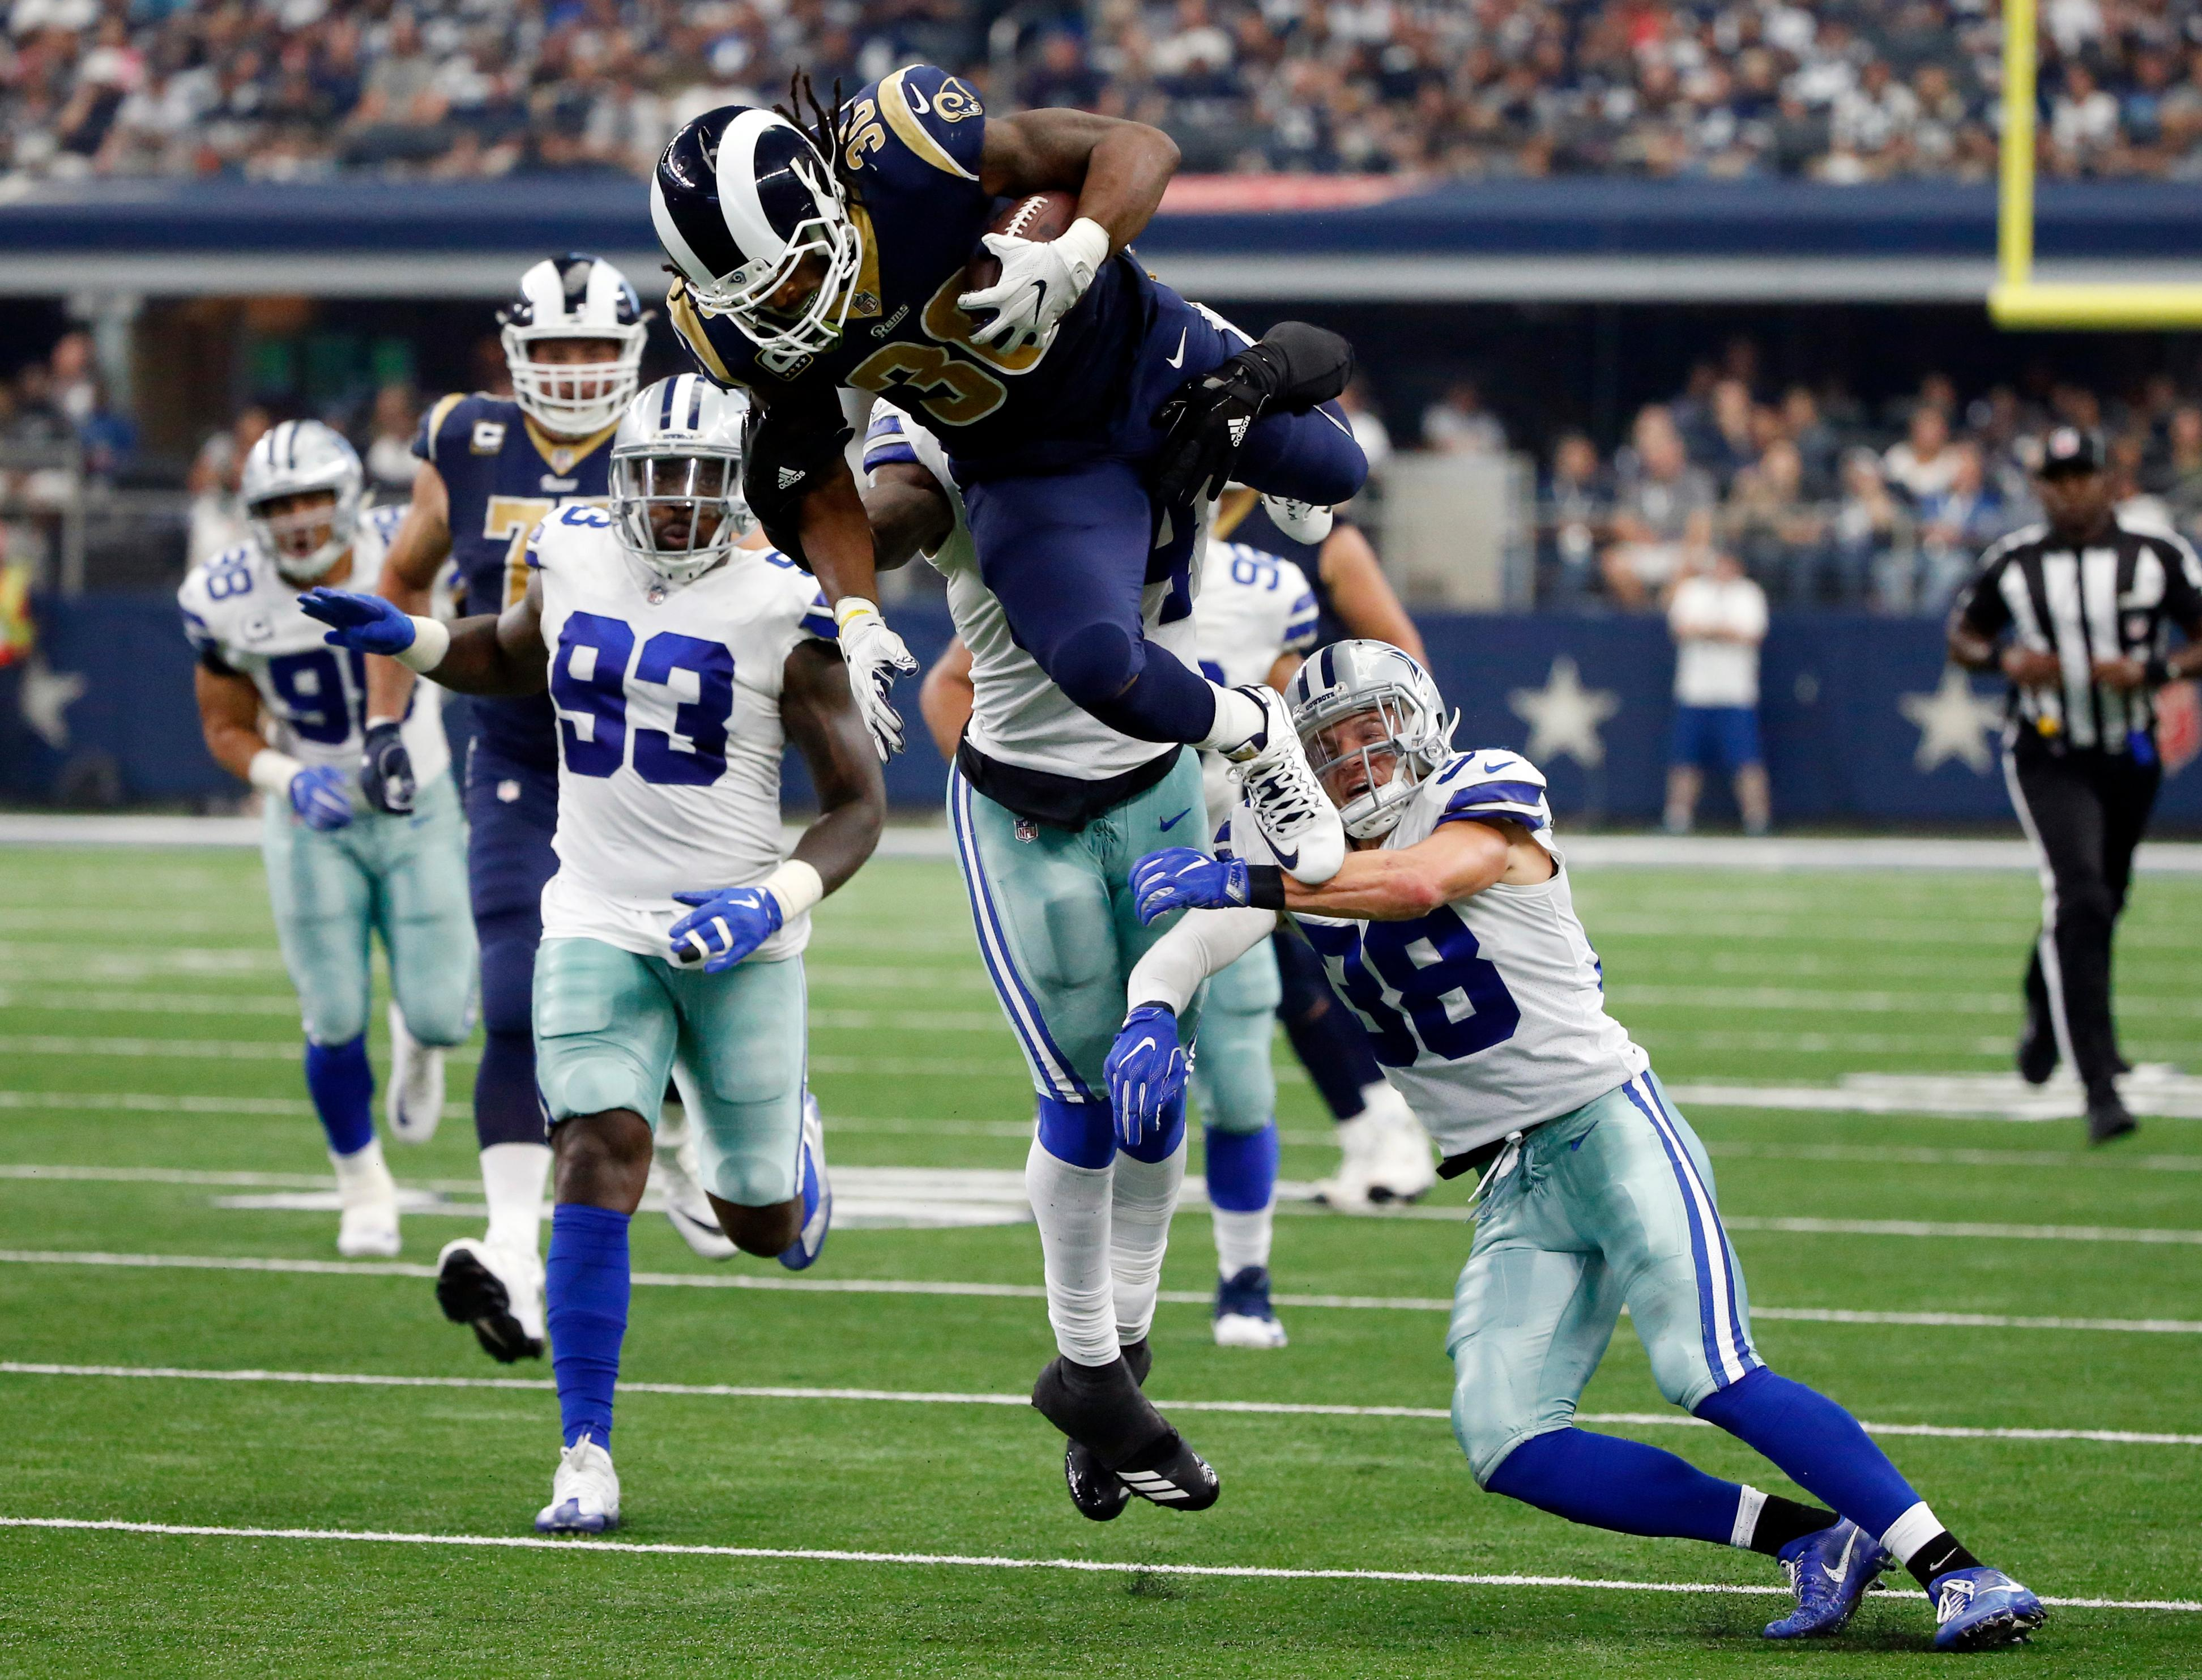 Los Angeles Rams running back Todd Gurley (30) is stopped by Dallas Cowboys linebacker Jaylon Smith, rear, and safety Jeff Heath (38) after Gurley lept over Heath on a carry in the second half of an NFL football game, Sunday, Oct. 1, 2017, in Arlington, Texas. (AP Photo/Michael Ainsworth)